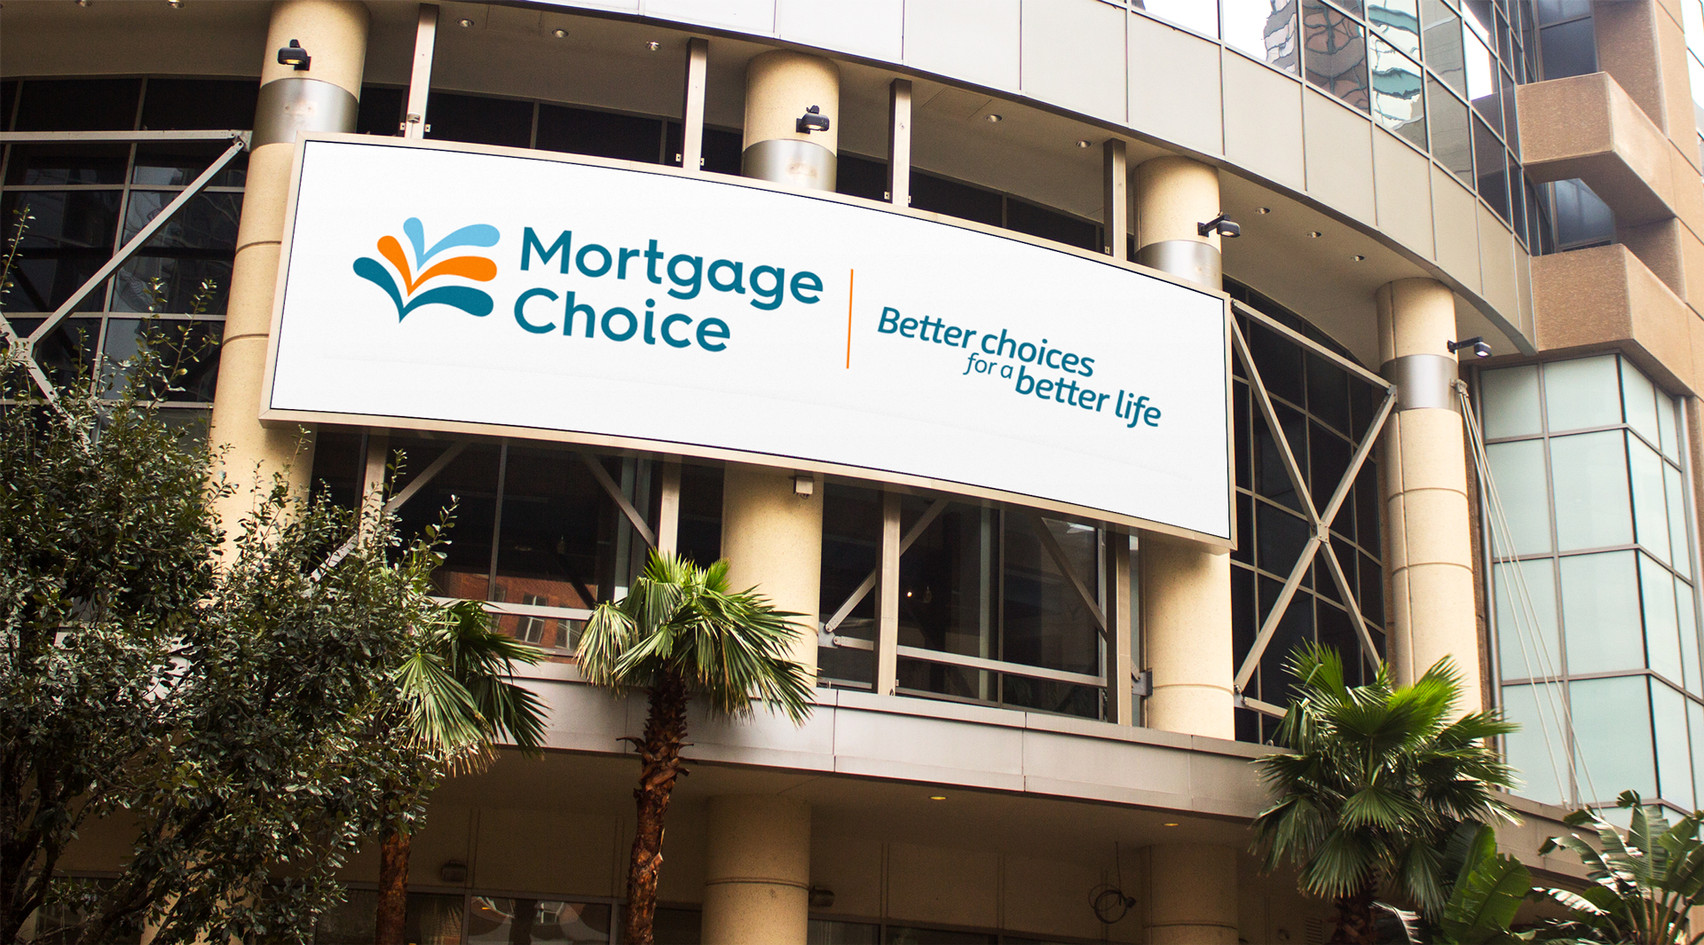 Mortgage Choice Location Sign